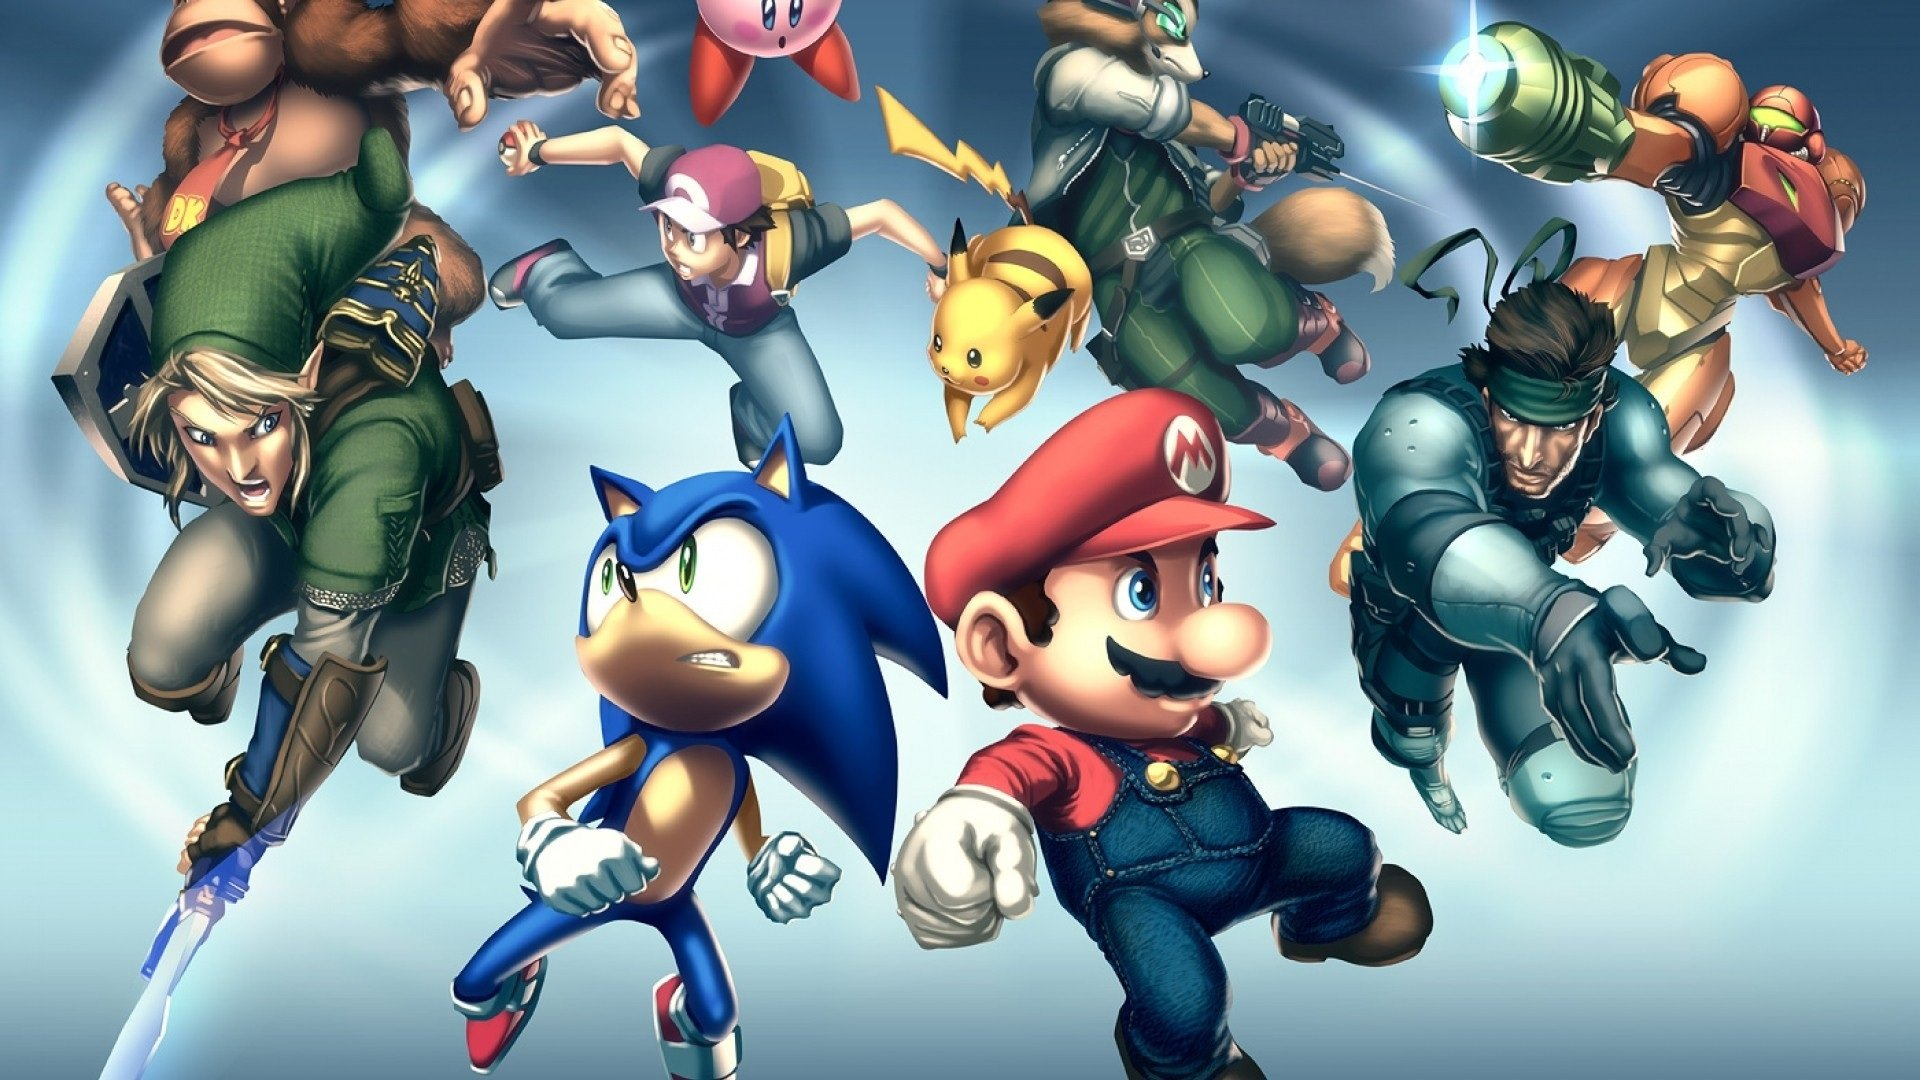 Super Smash Bros Brawl Hd Wallpaper Background Image